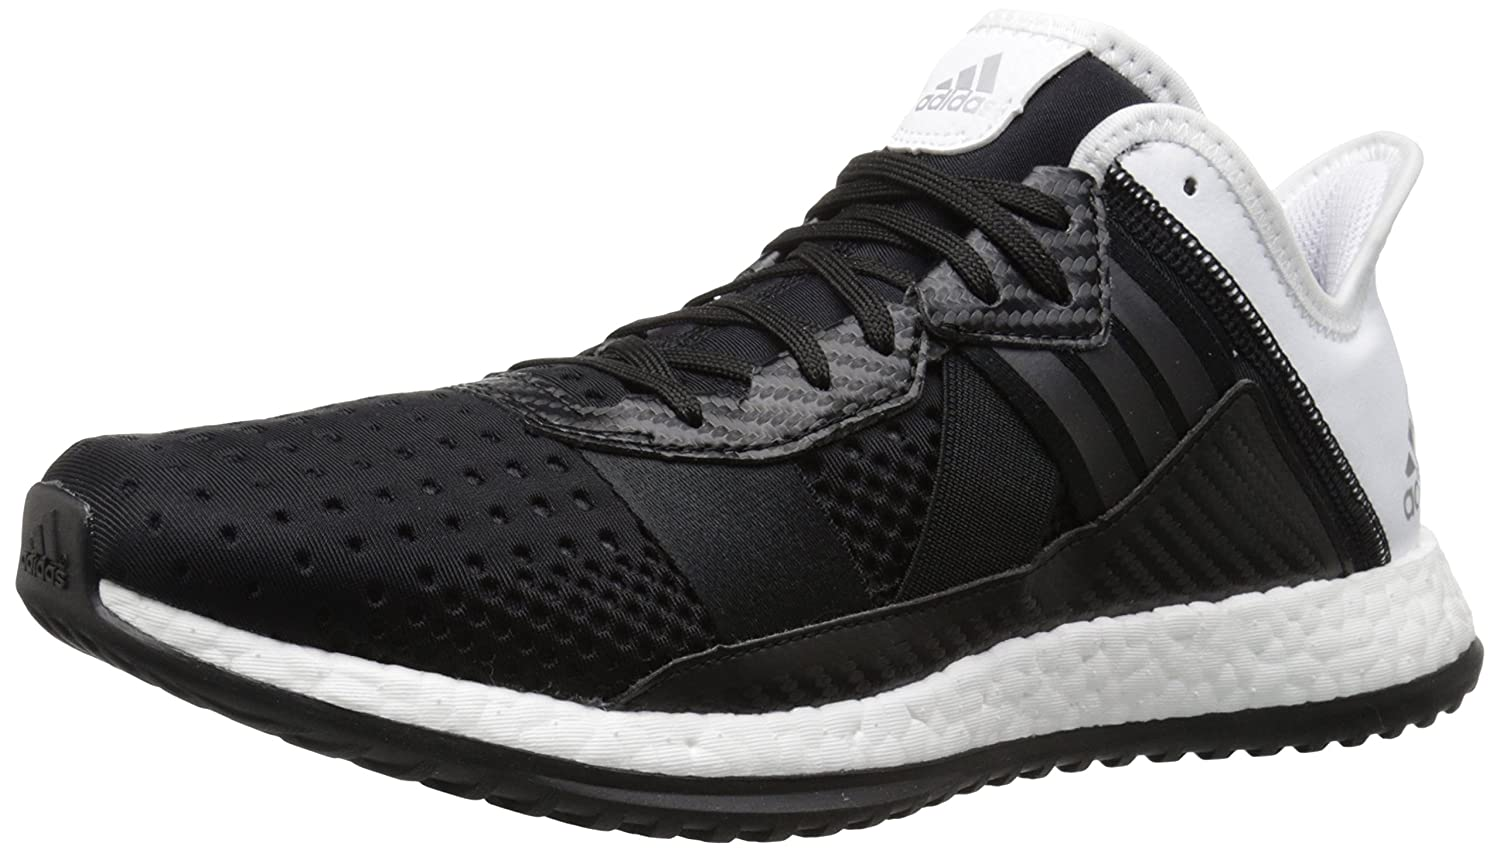 Adidas Men's Pure Boost ZG Trainer, GreyWhite, 11 M US